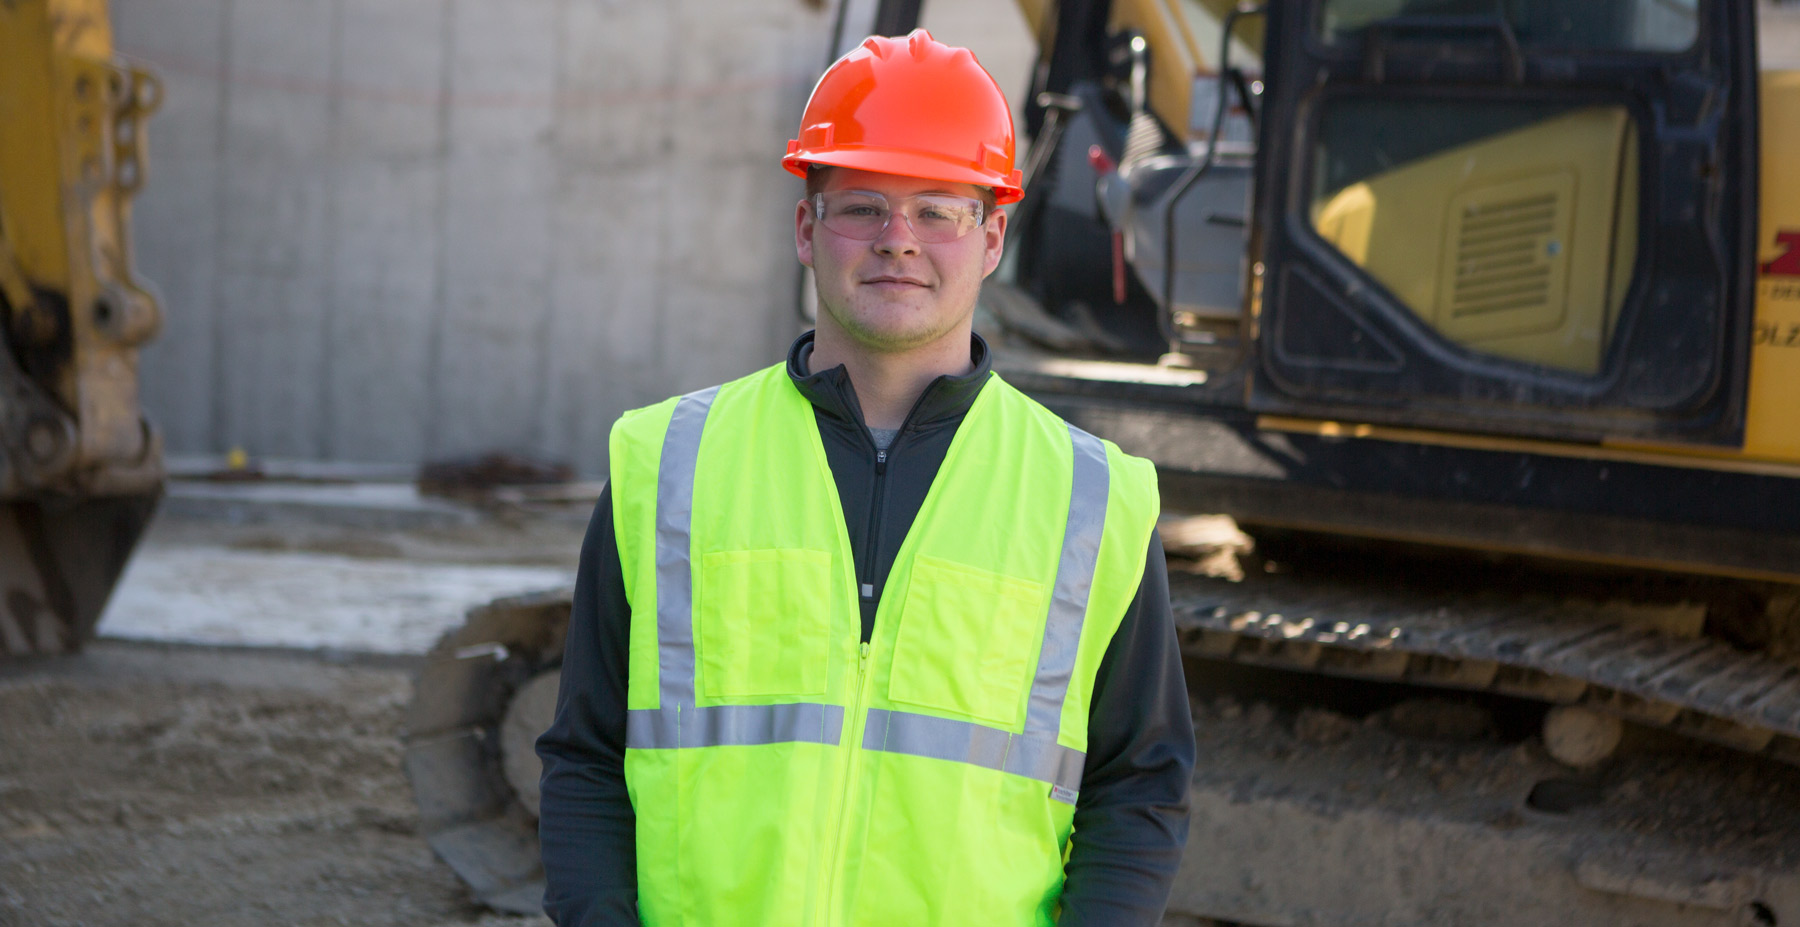 Student is photographed on a construction site.